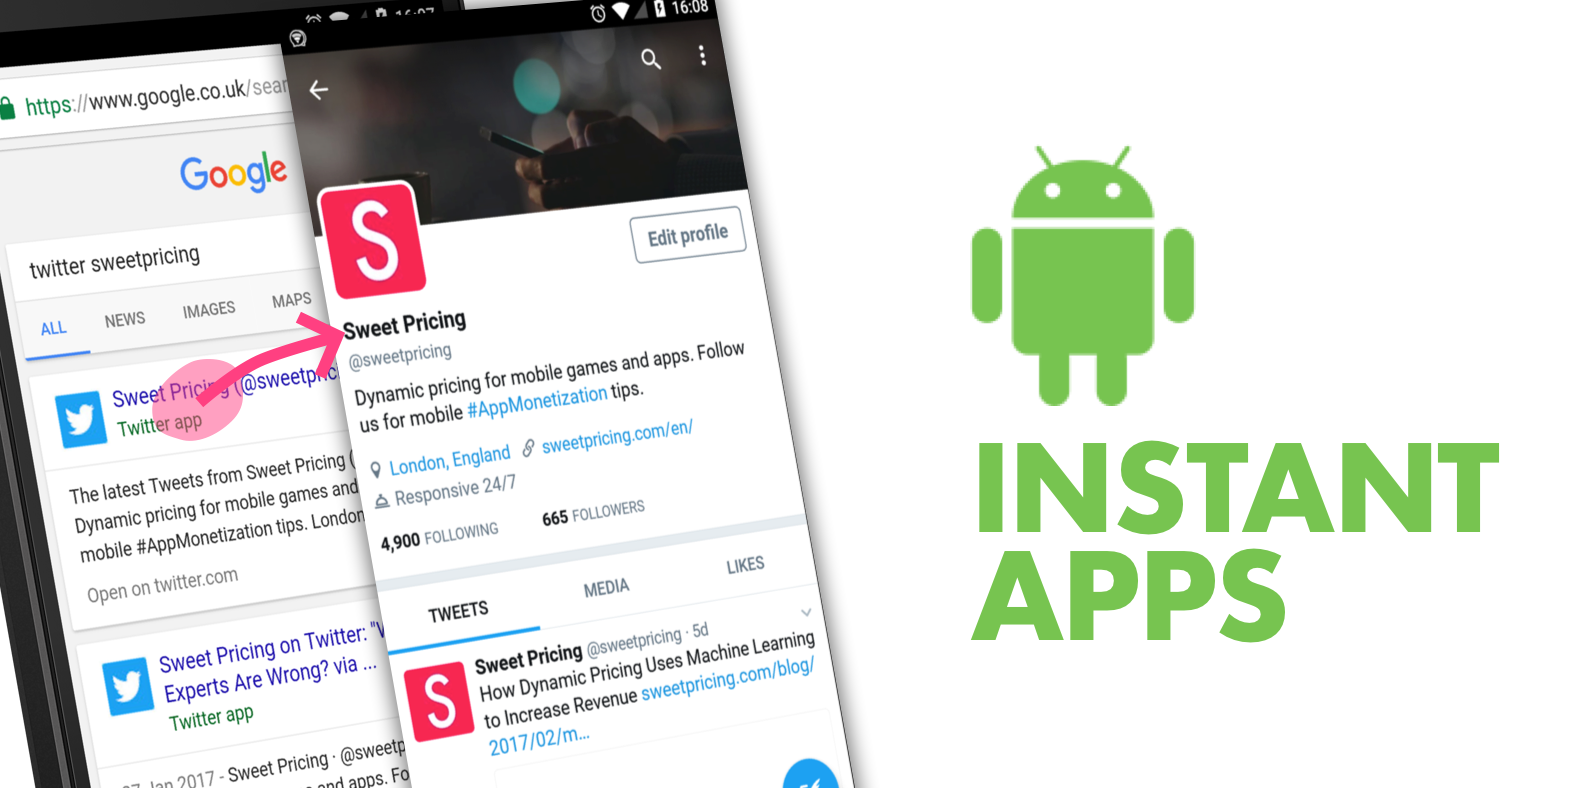 Android Instant Apps gives access to mobile apps without installation.